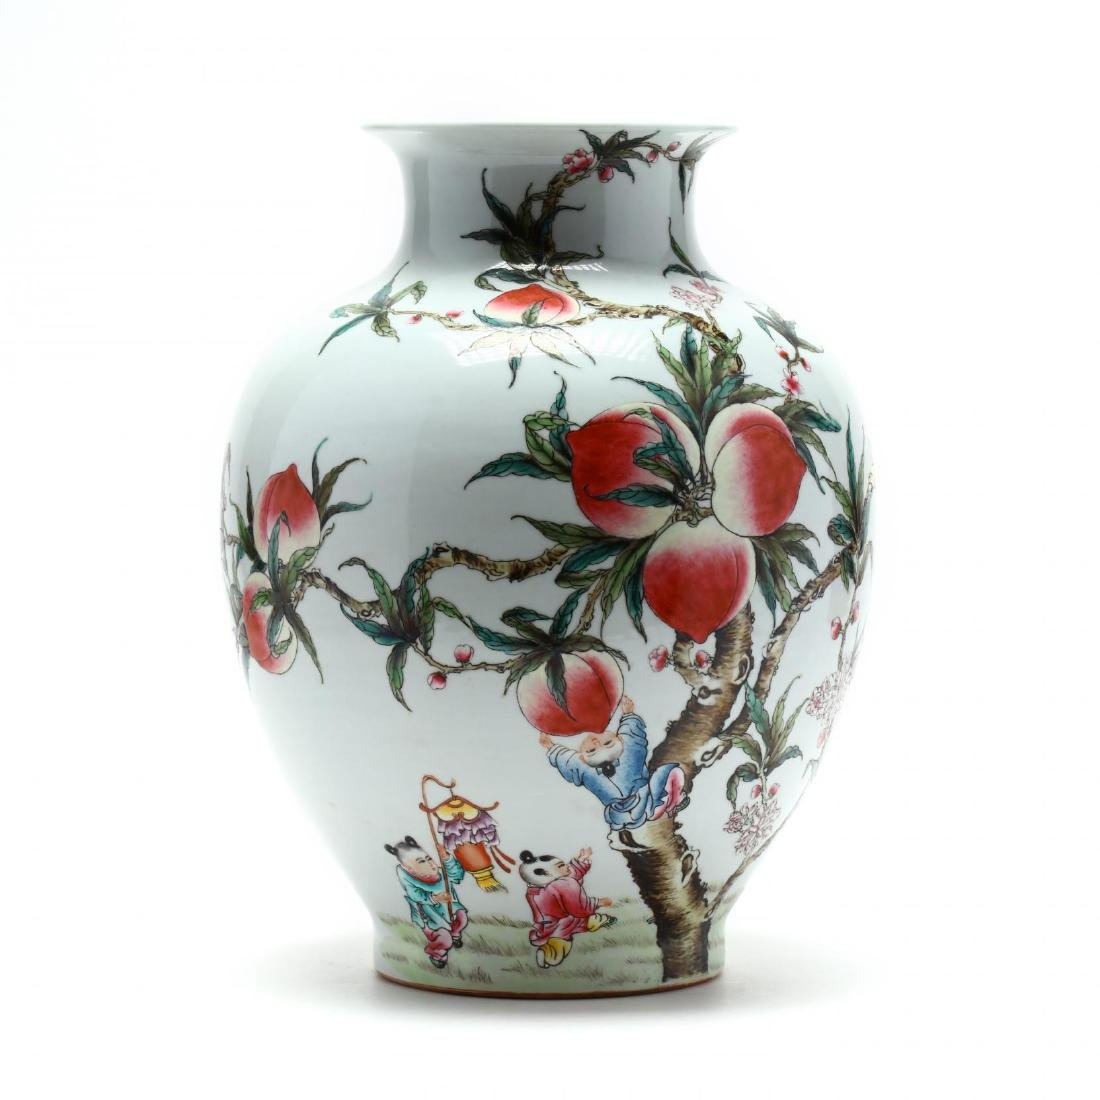 A Chinese Porcelain Vase with Nine Peaches